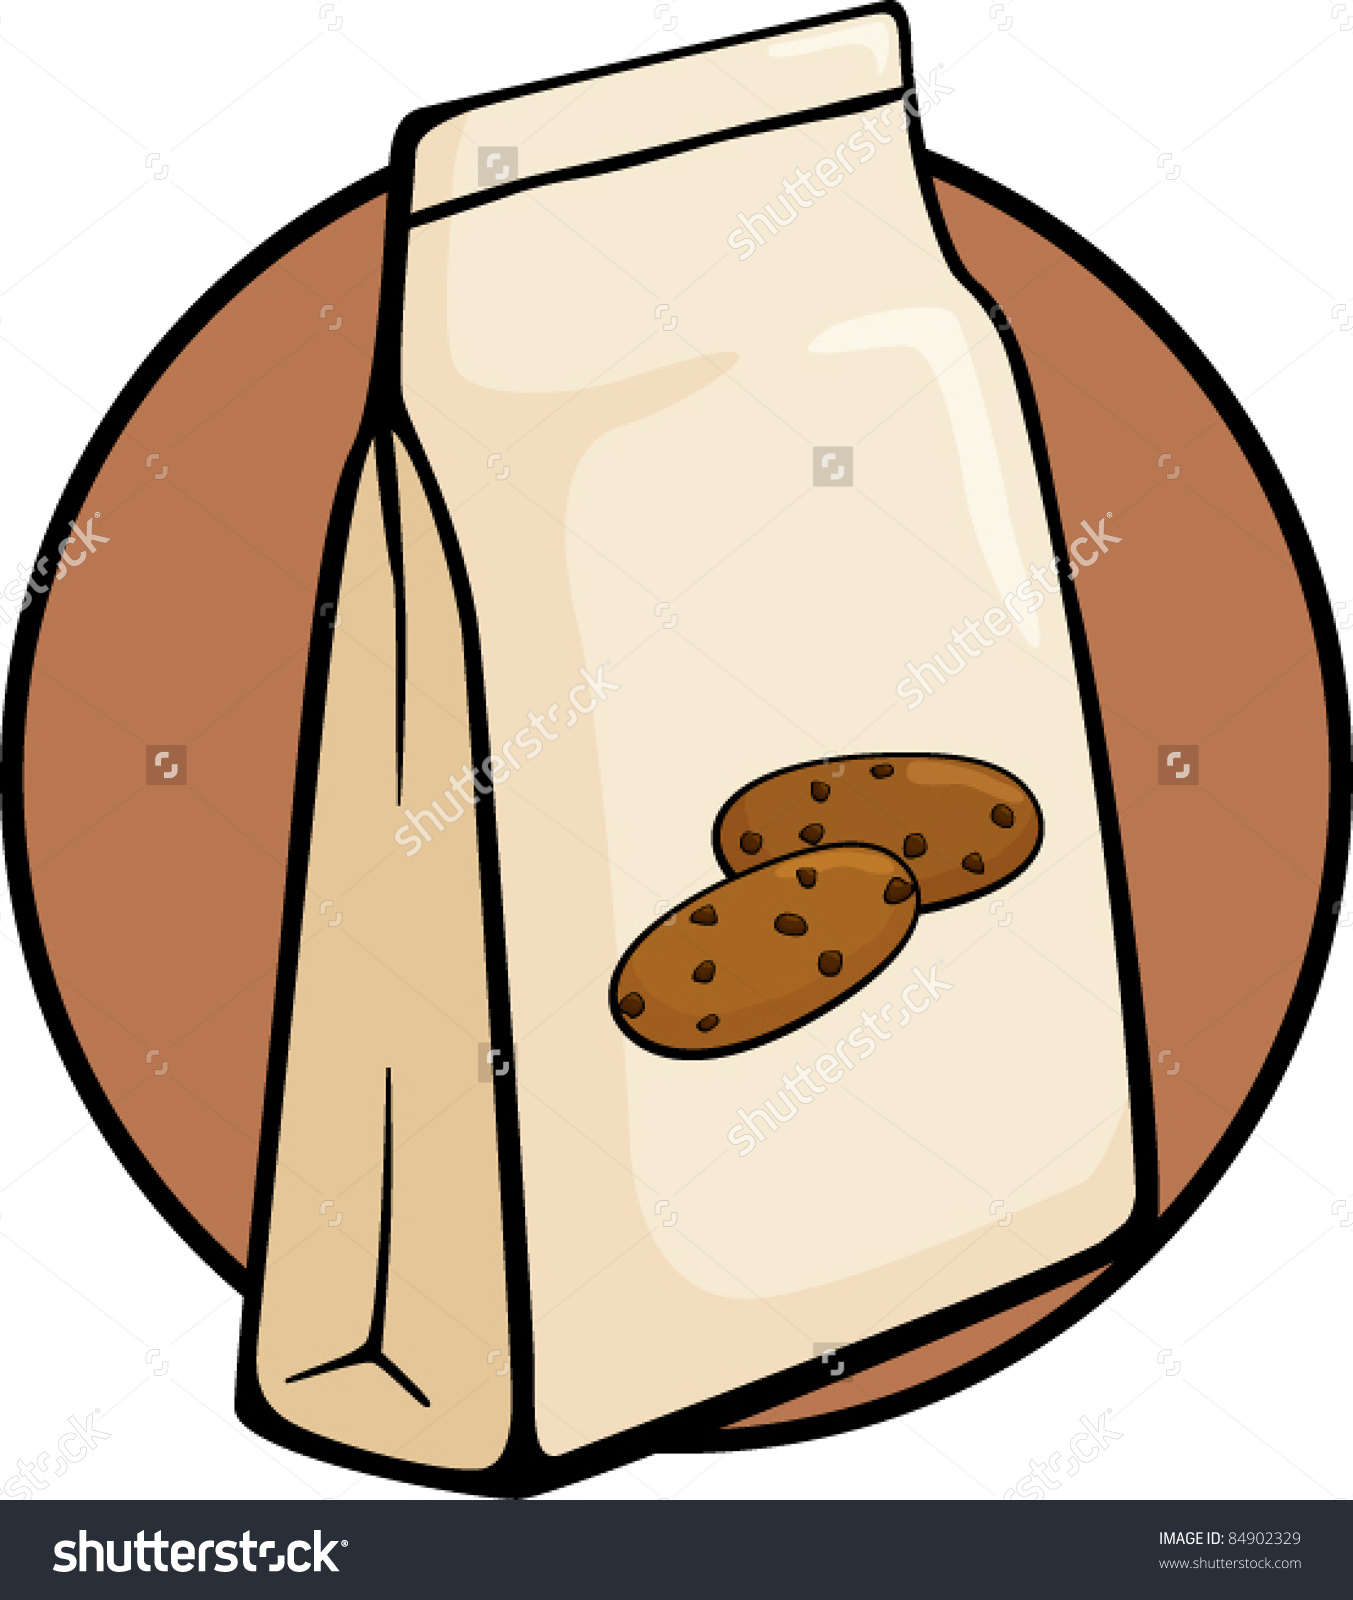 A packet of biscuits clipart svg free library Bag Of Chips Clipart | Free download best Bag Of Chips Clipart on ... svg free library